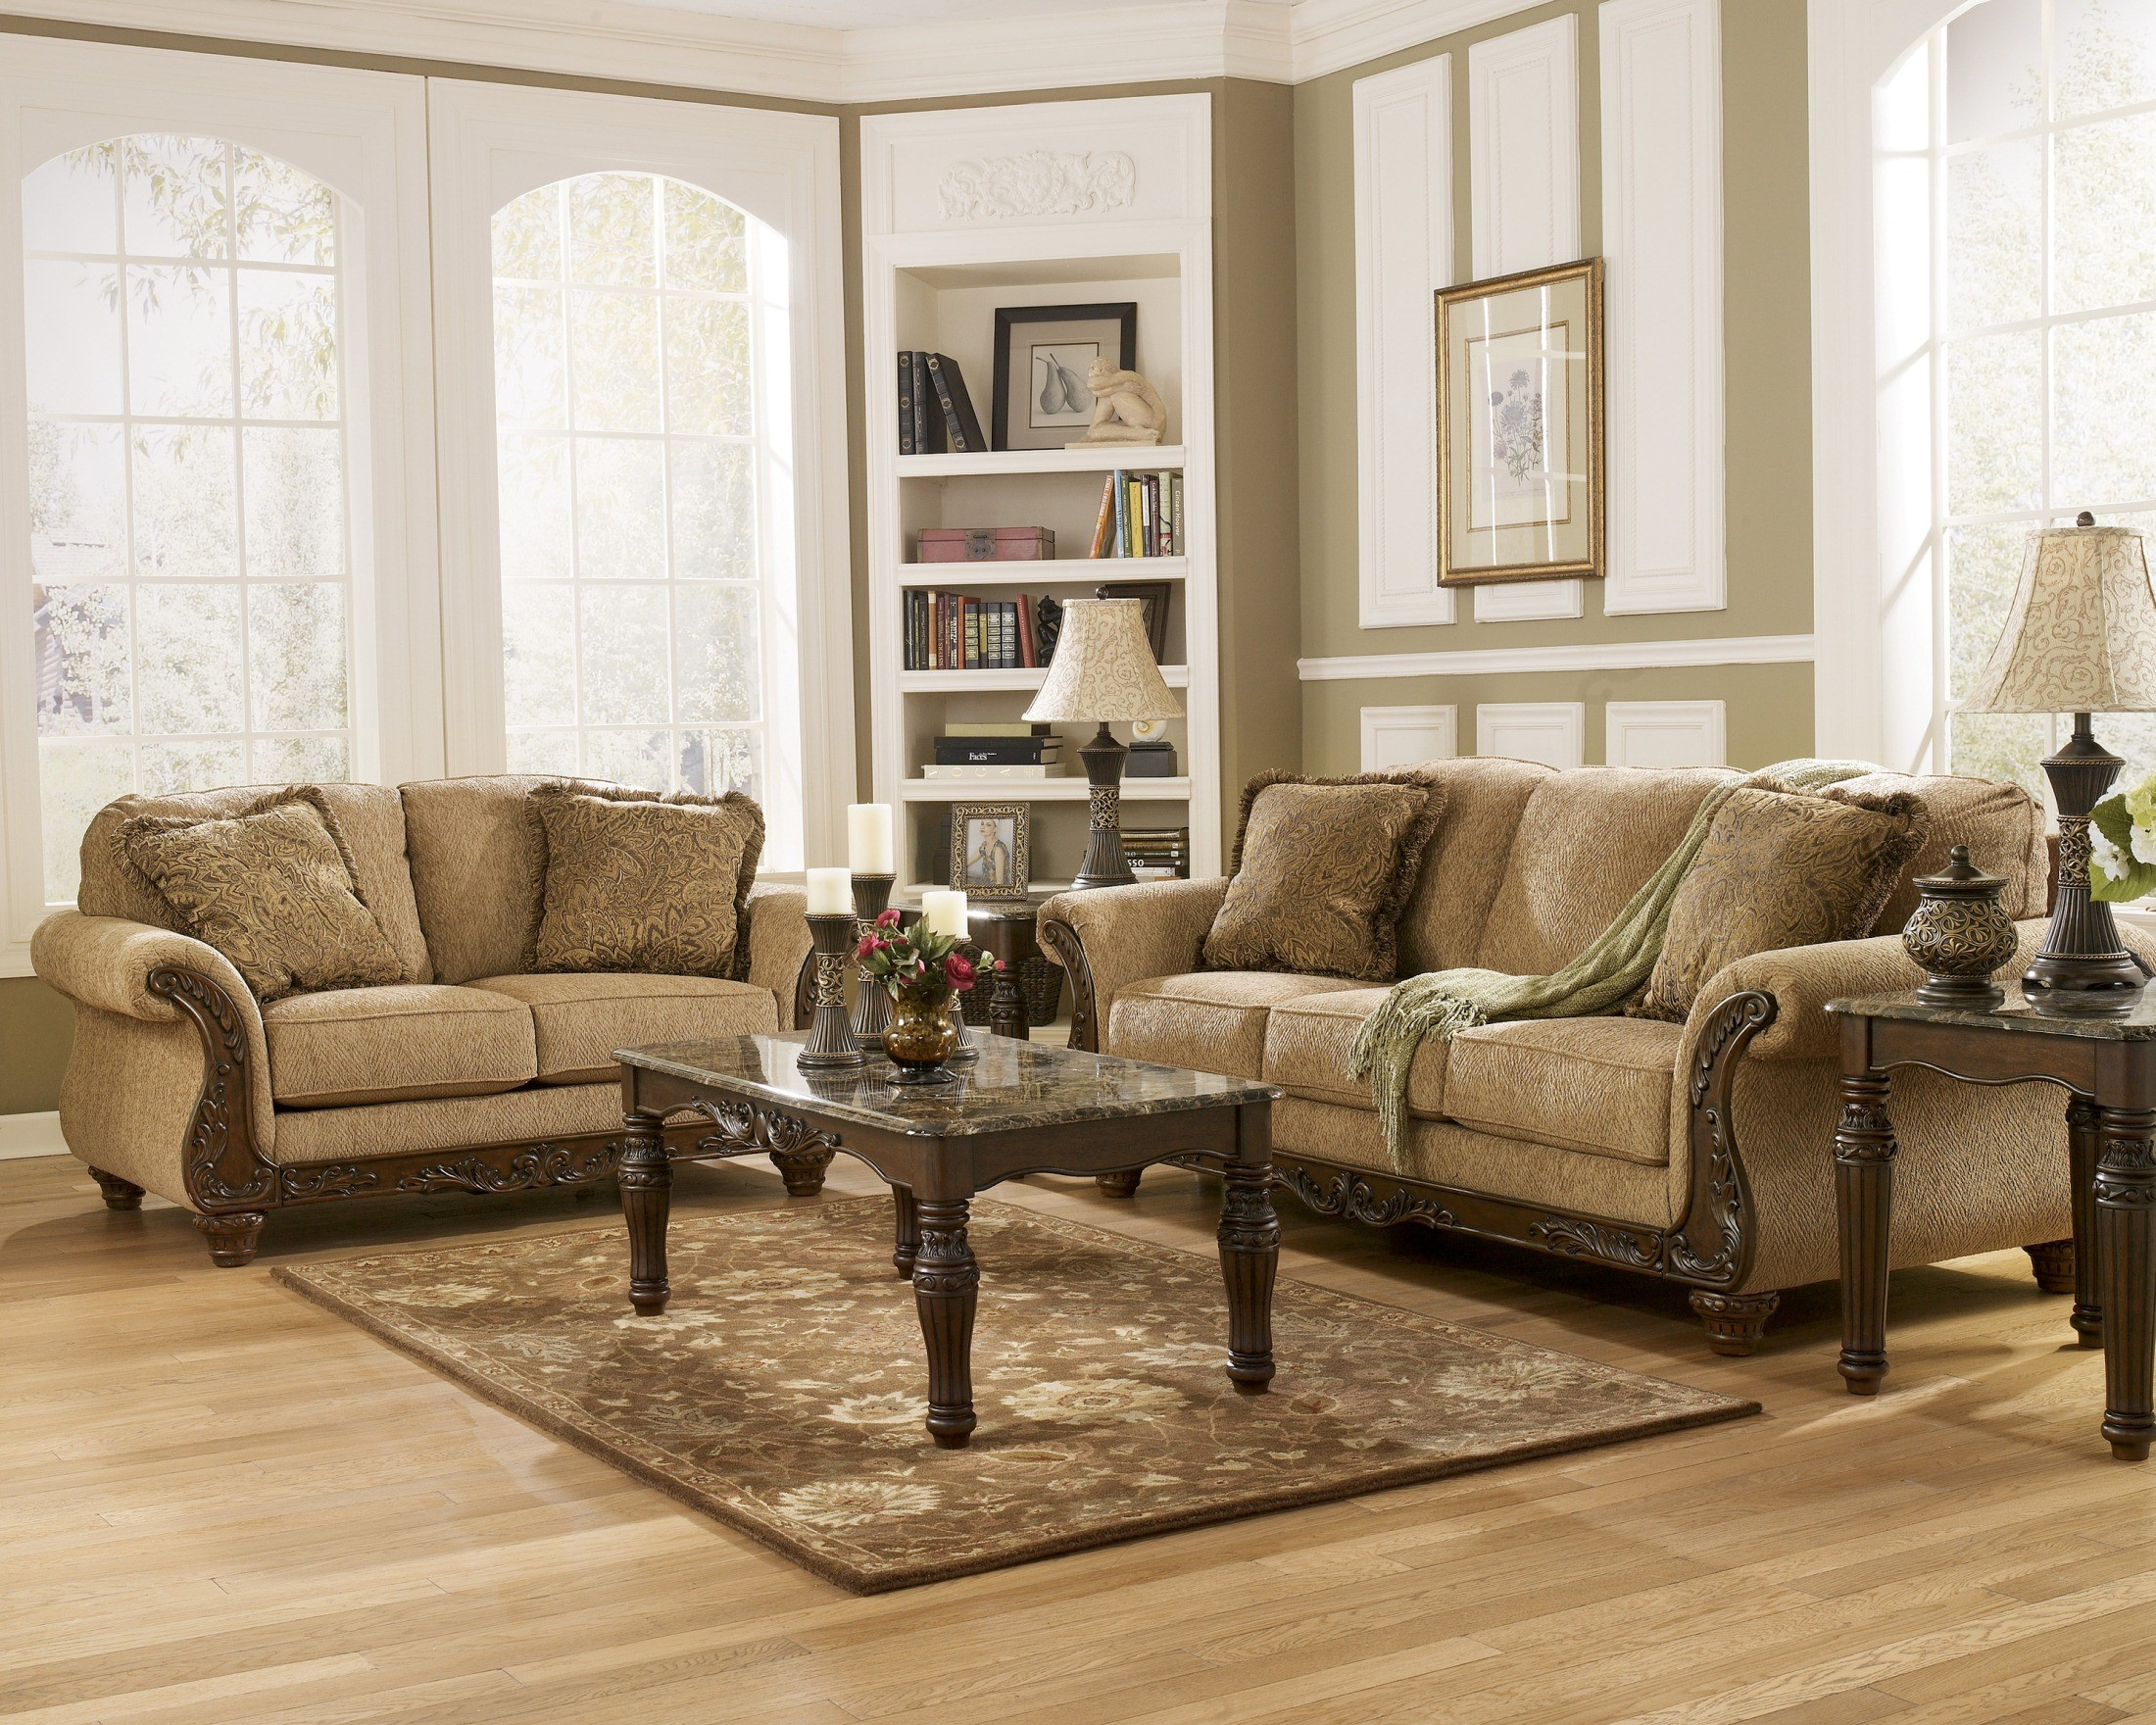 Cambridge Amber Living Room Set From Ashley 3940138 Coleman Furniture